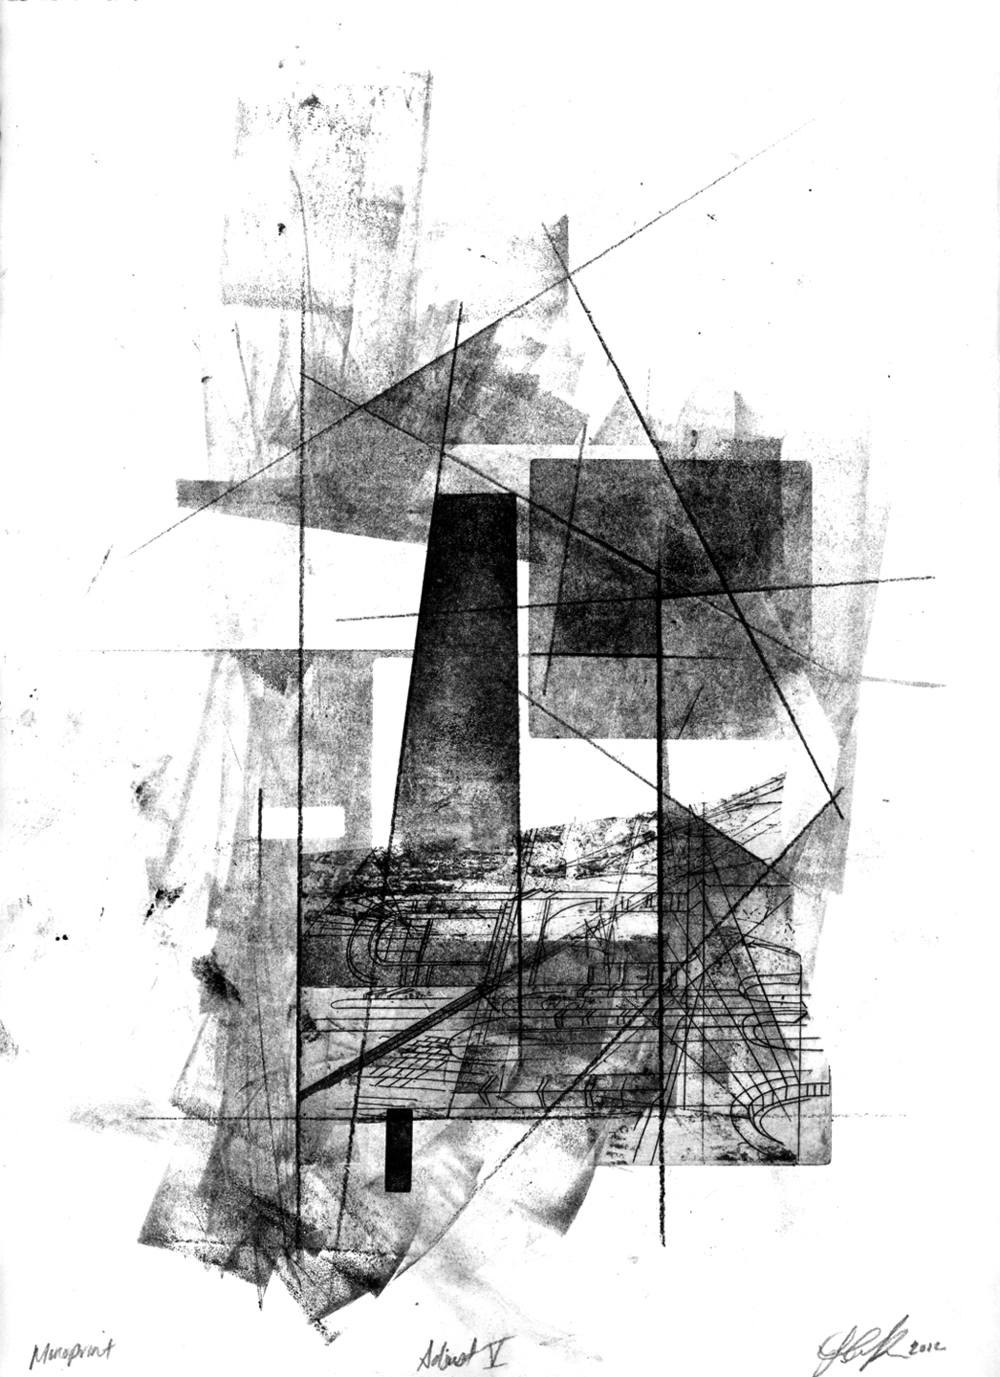 Adjust V, 2012, intaglio, relief and drawing on paper, 11 x 15in